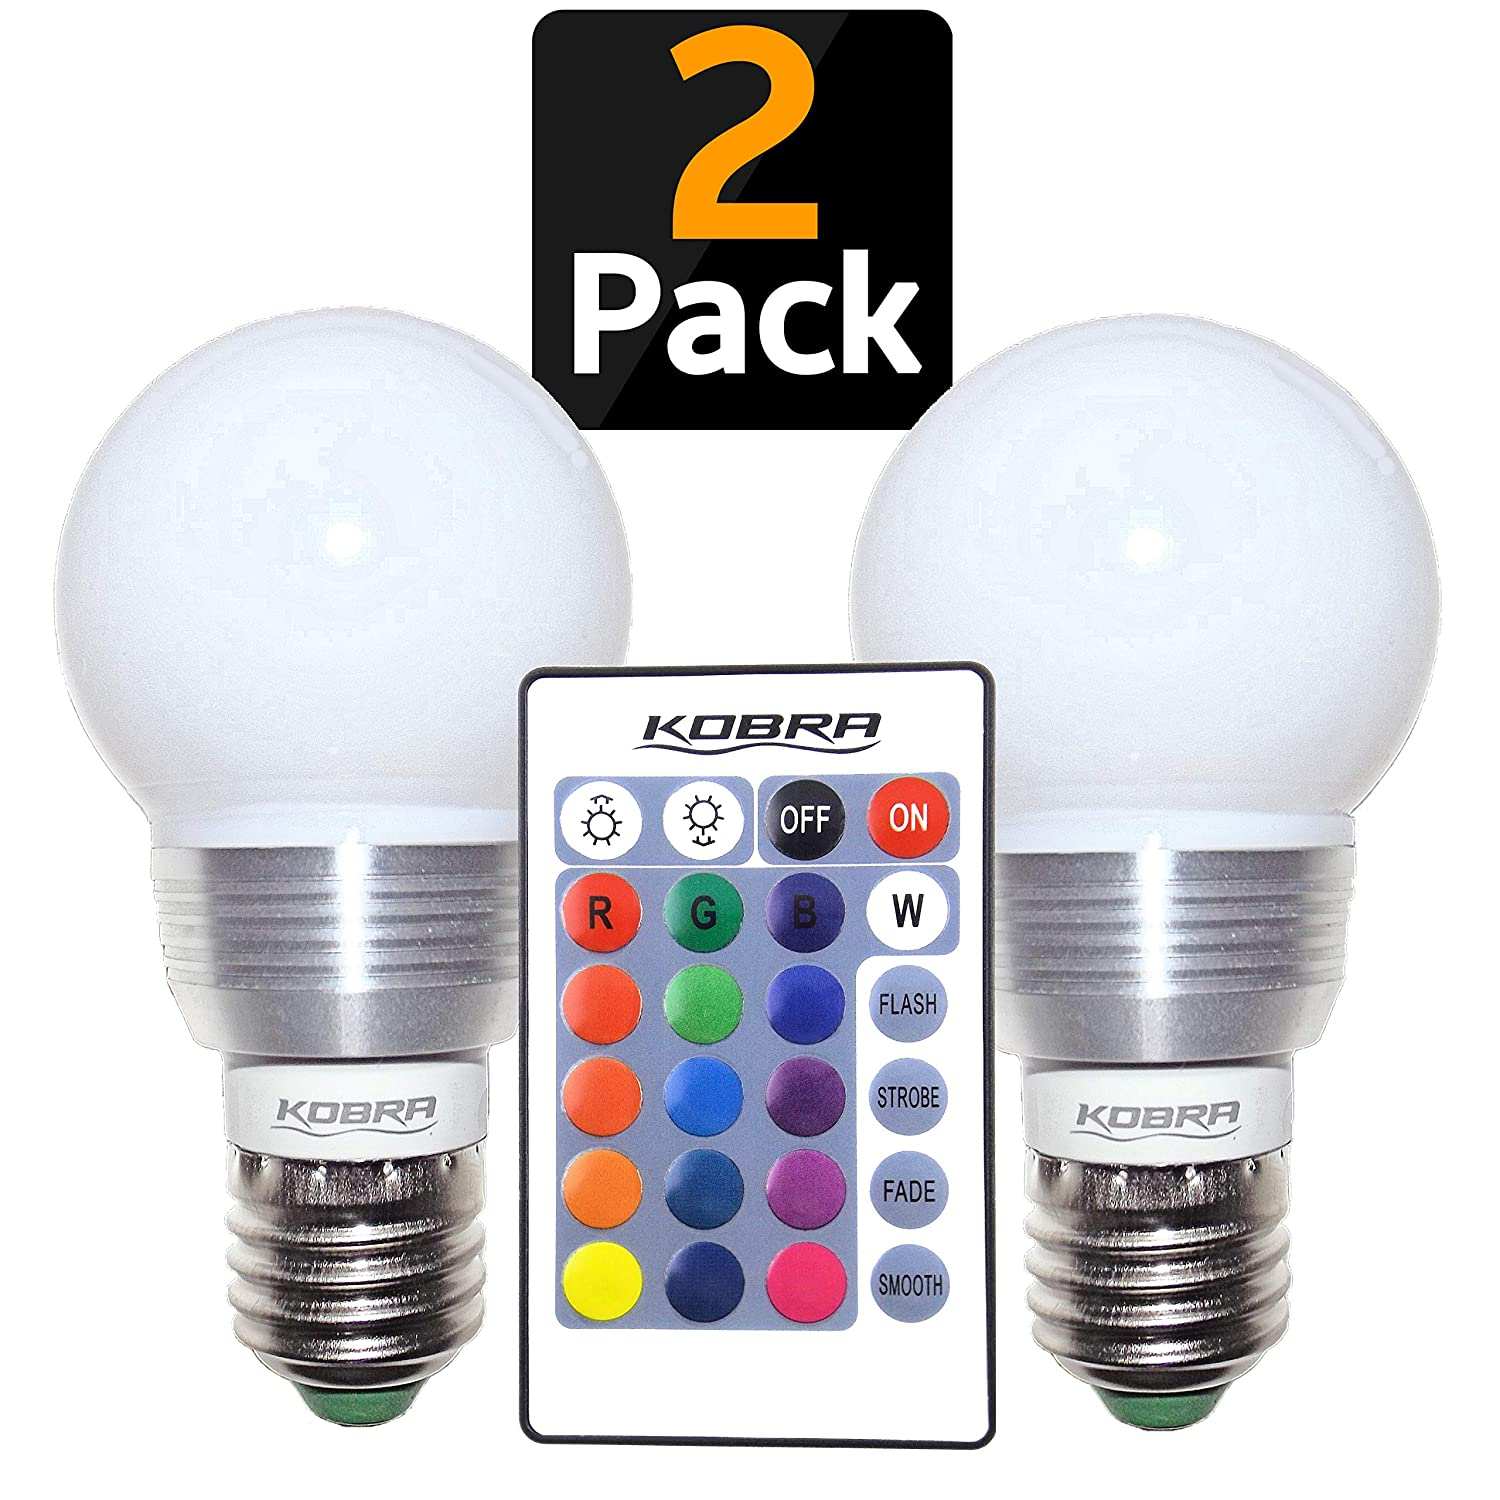 KOBRA LED Bulb color Changing Light Bulb with Remote Control (2 Pack)16 Different color Choices Smooth Flash or Strobe Mode Premium Quality & Energy Saving Retro LED Lamp